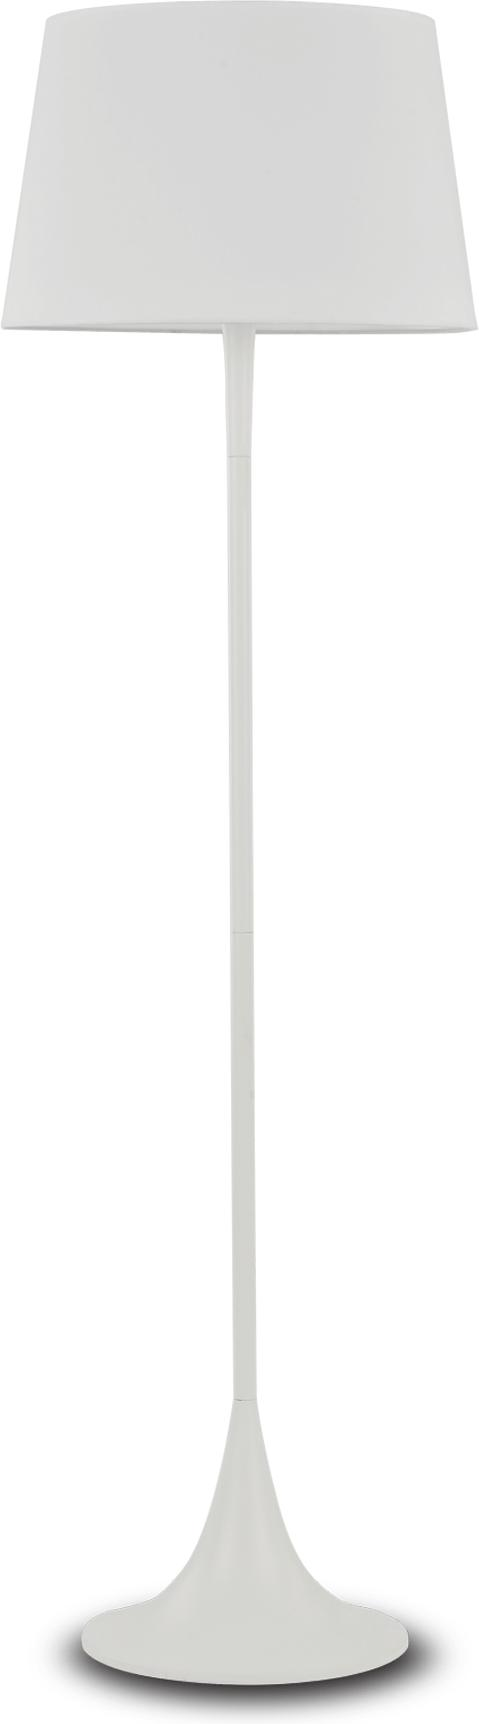 Ideal lux LED london pt1 bianco Stehleuchte 5W 110233